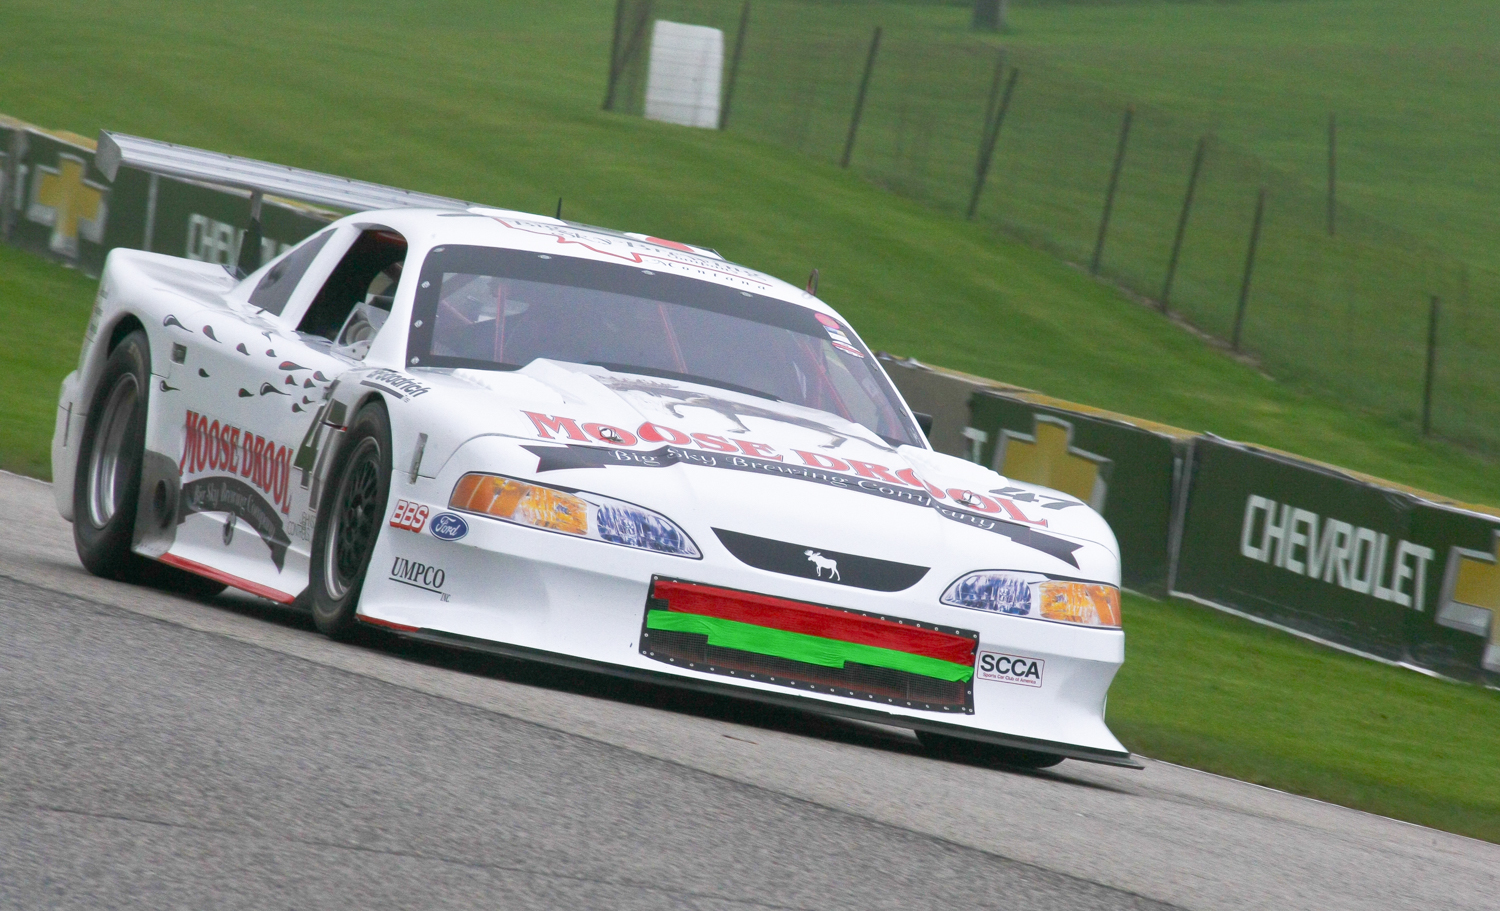 #47 - Craig Olson - 2000 Ford Mustang. Photo: Jeff Schabowski